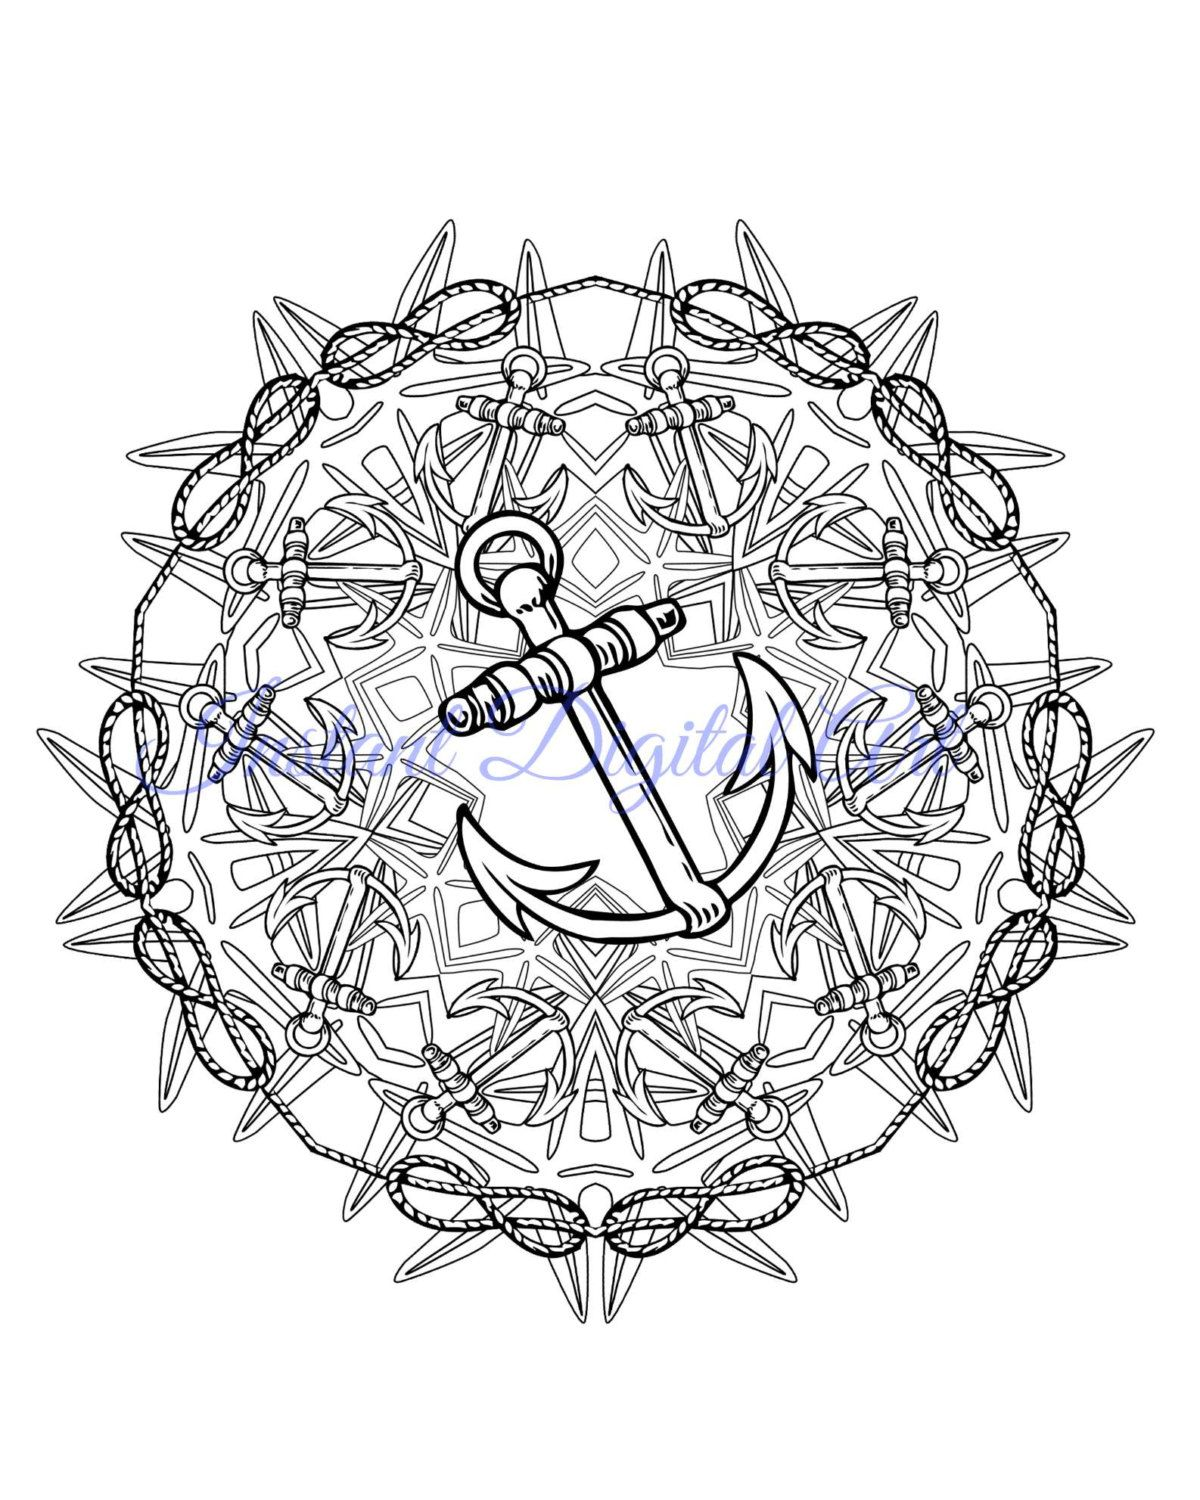 Mandala Coloring Pages Mehndi Henna Black And White Printable Nautical Anchor Ocean Instant